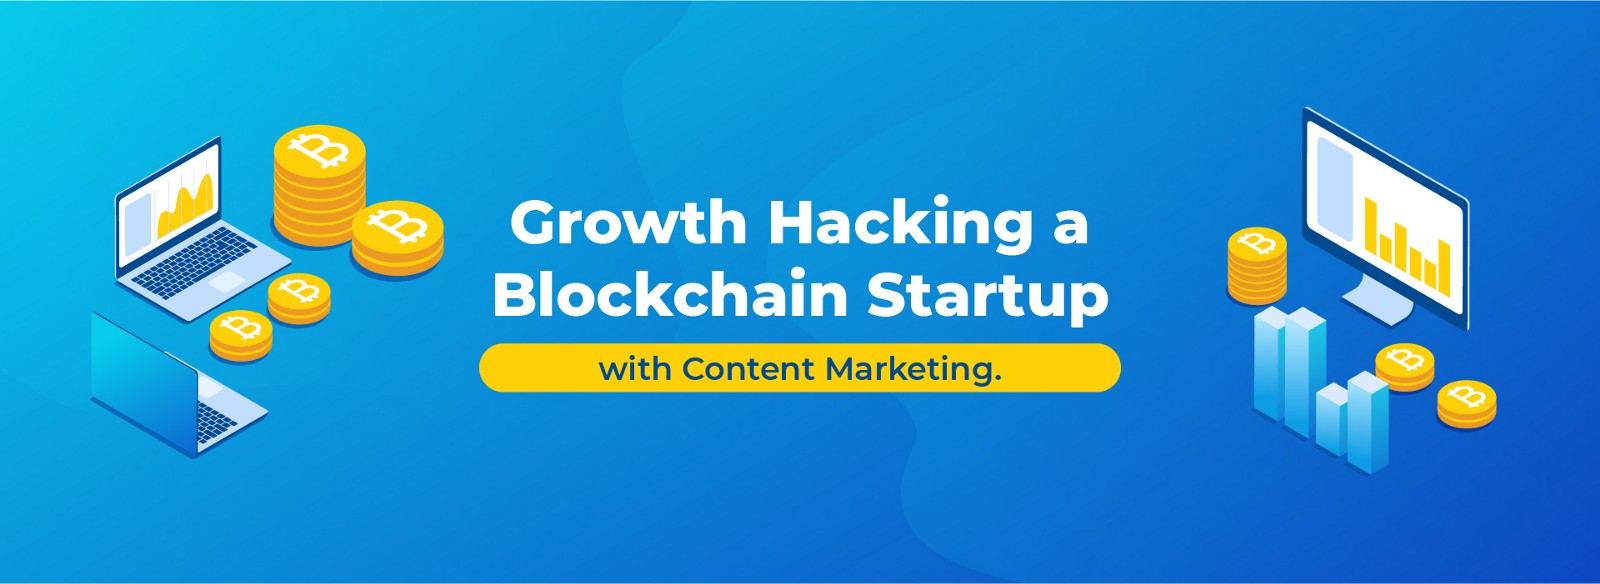 Growth Hacking a Blockchain Startup — with Content Marketing